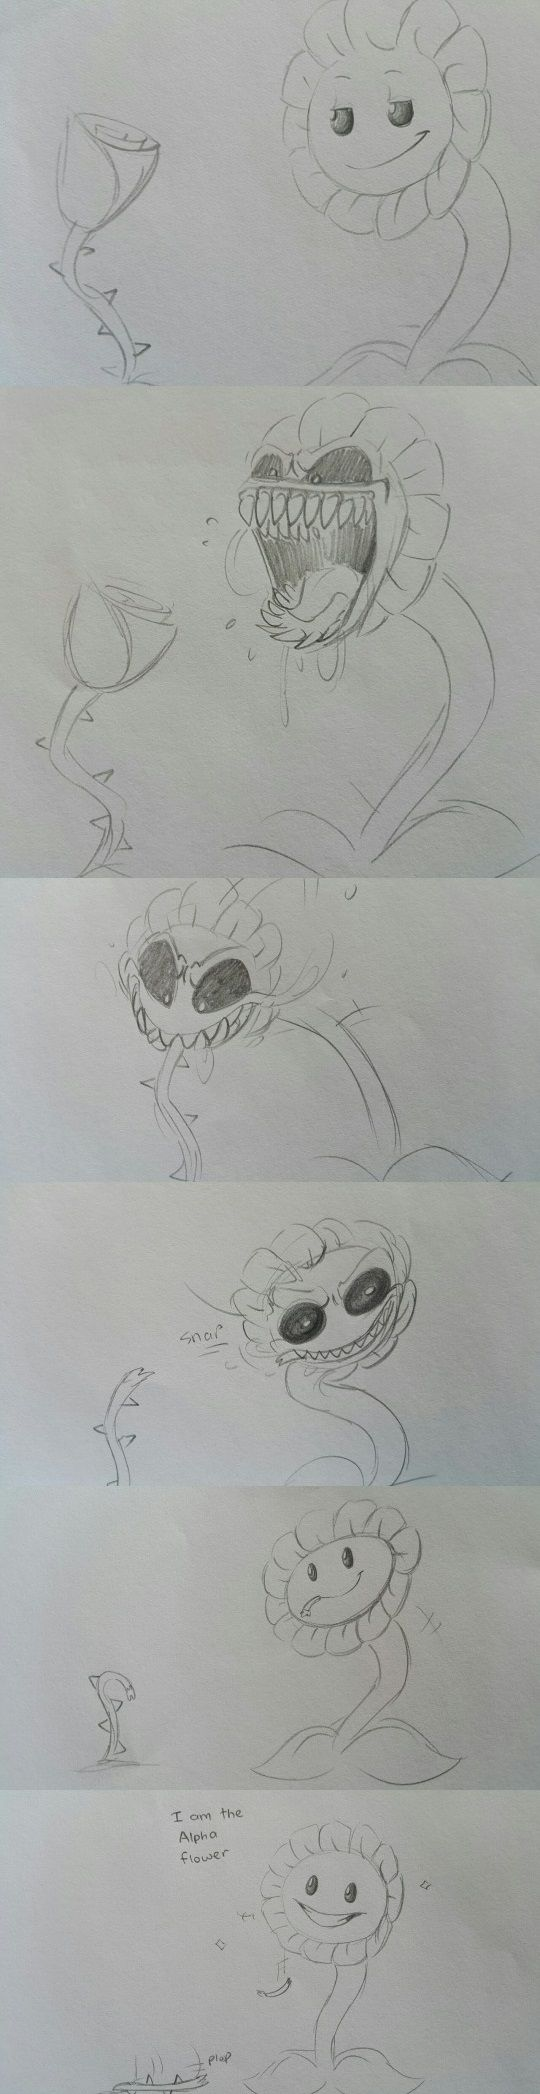 Flowey what tHE HECK!<<<*small terrified whimpering noises*